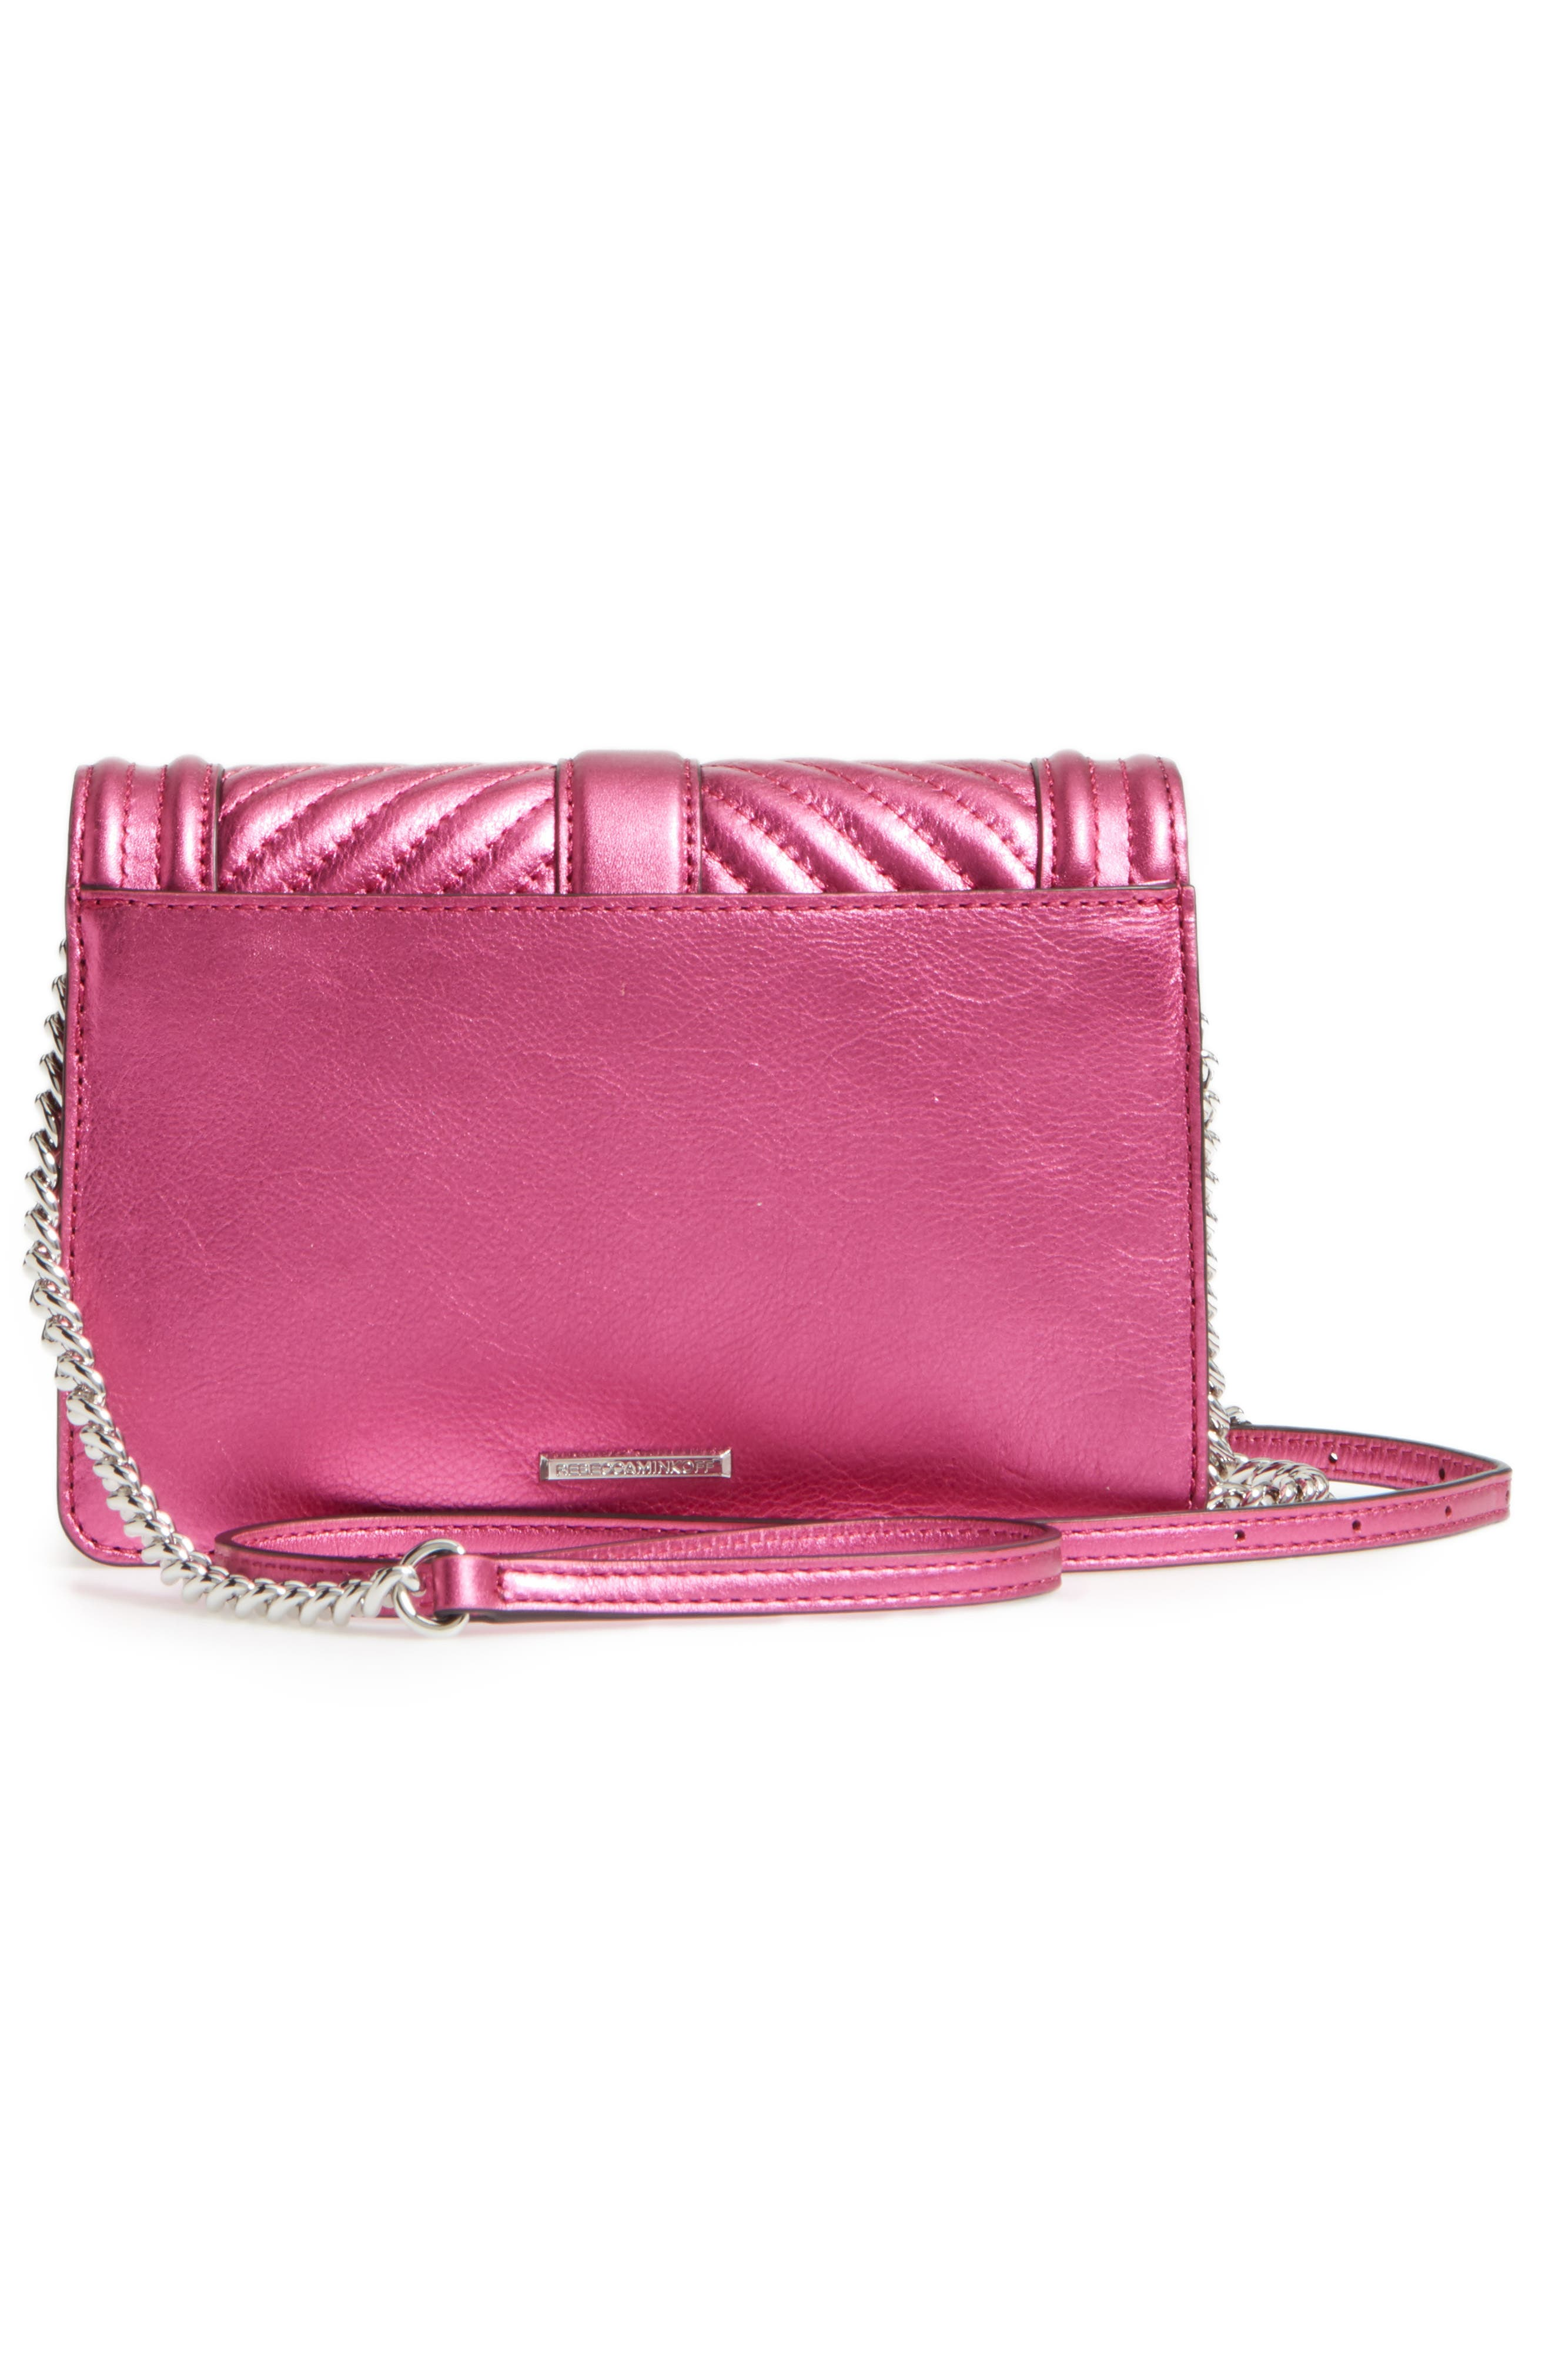 Small Love Metallic Leather Crossbody Bag,                             Alternate thumbnail 3, color,                             650